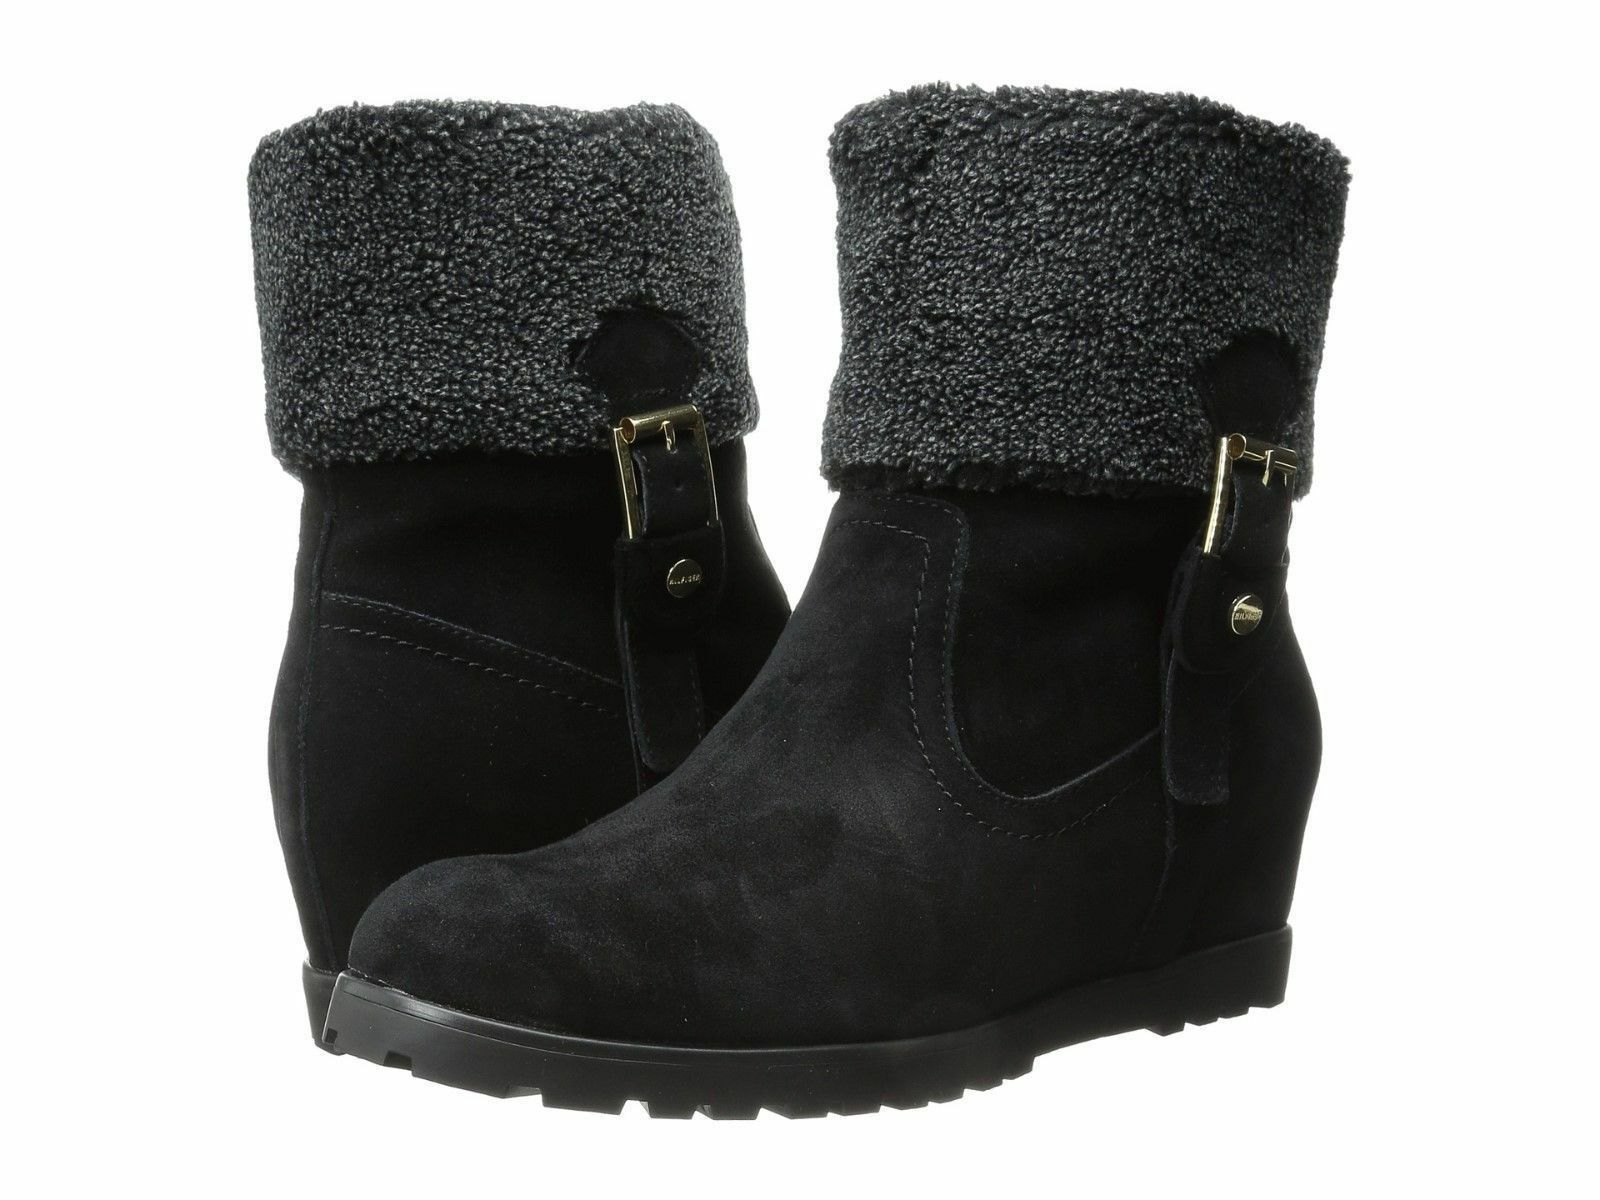 Tommy Hilfiger Women's Boot Ankle Soffia Suede Booties Black 7.5M